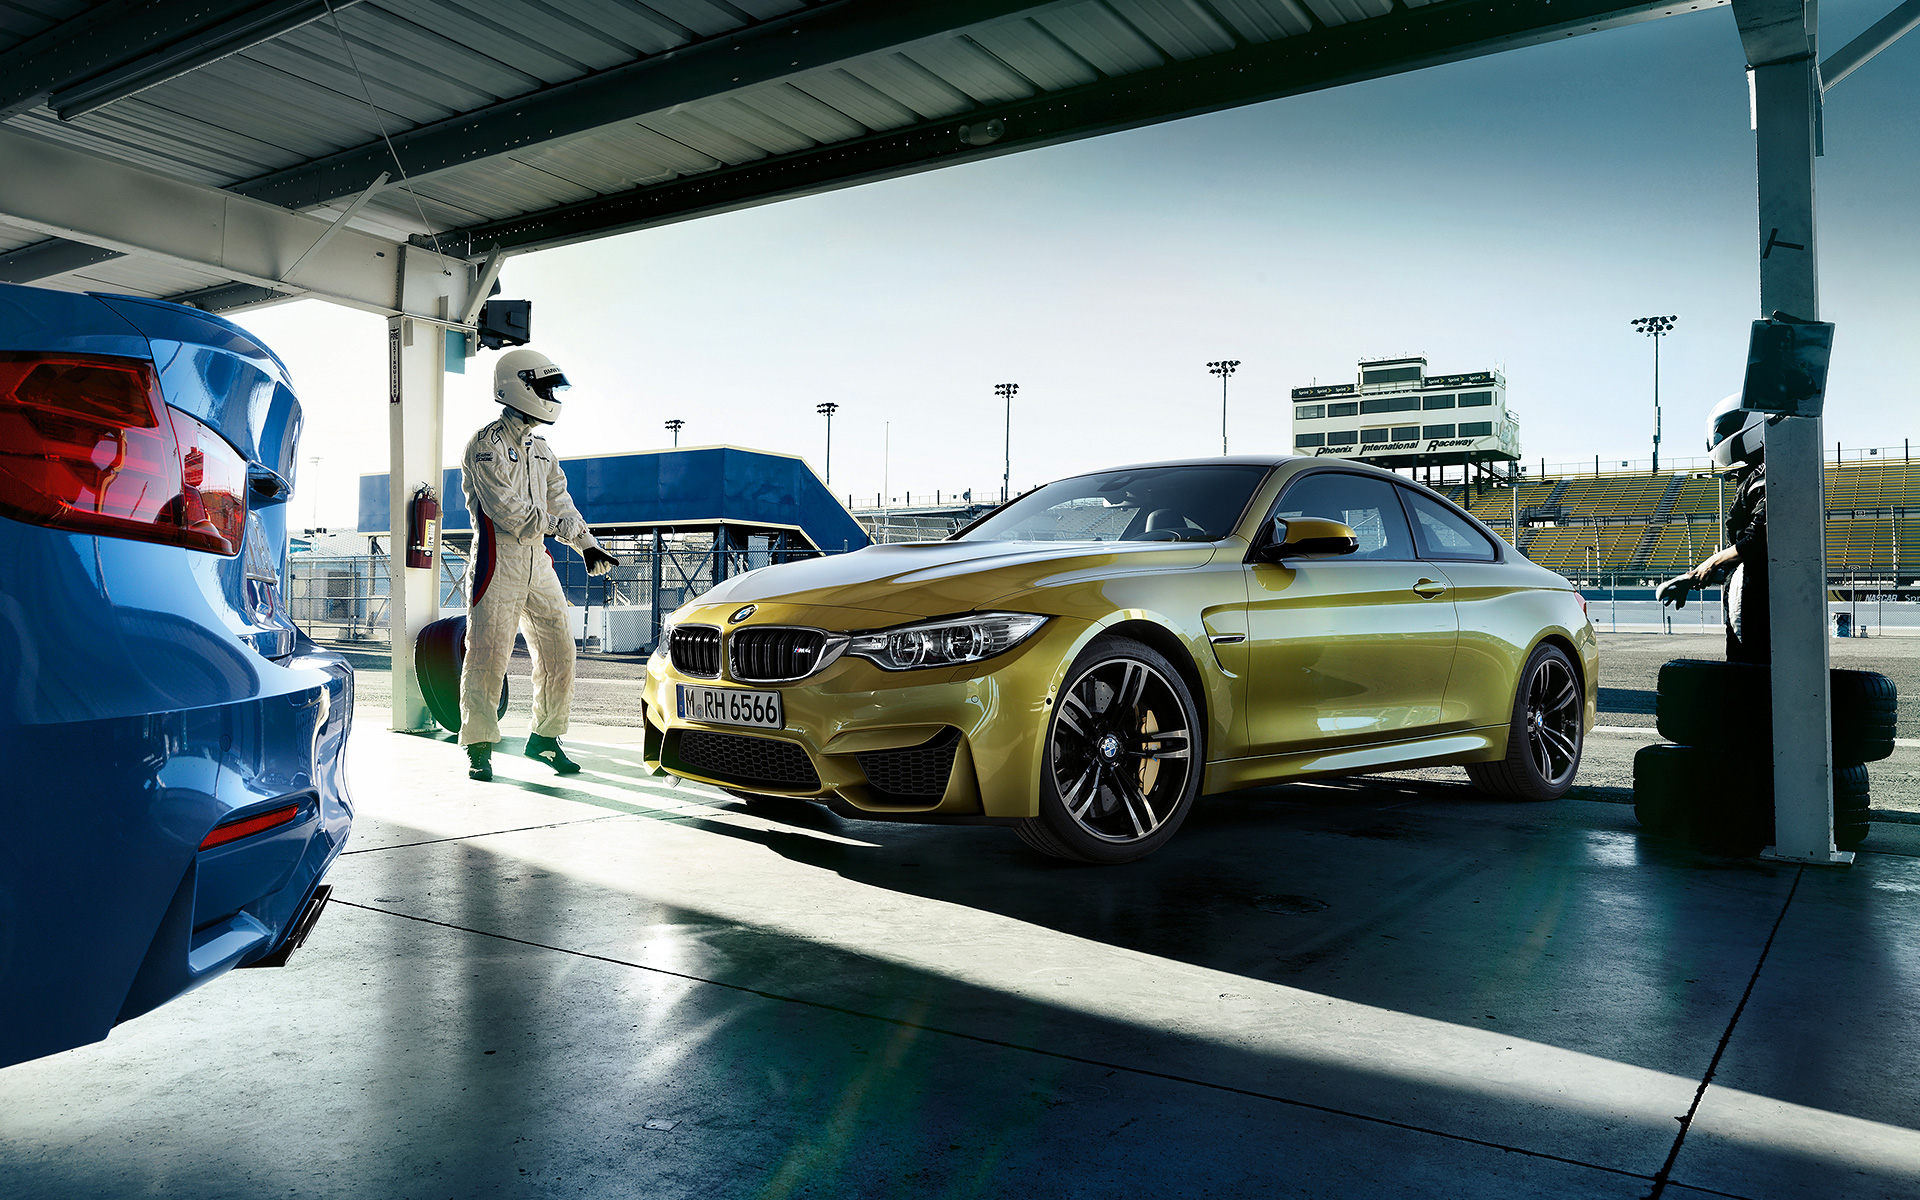 Bmw M3 F80 Und Bmw M4 F82 Wallpaper Motive In 1920x1200